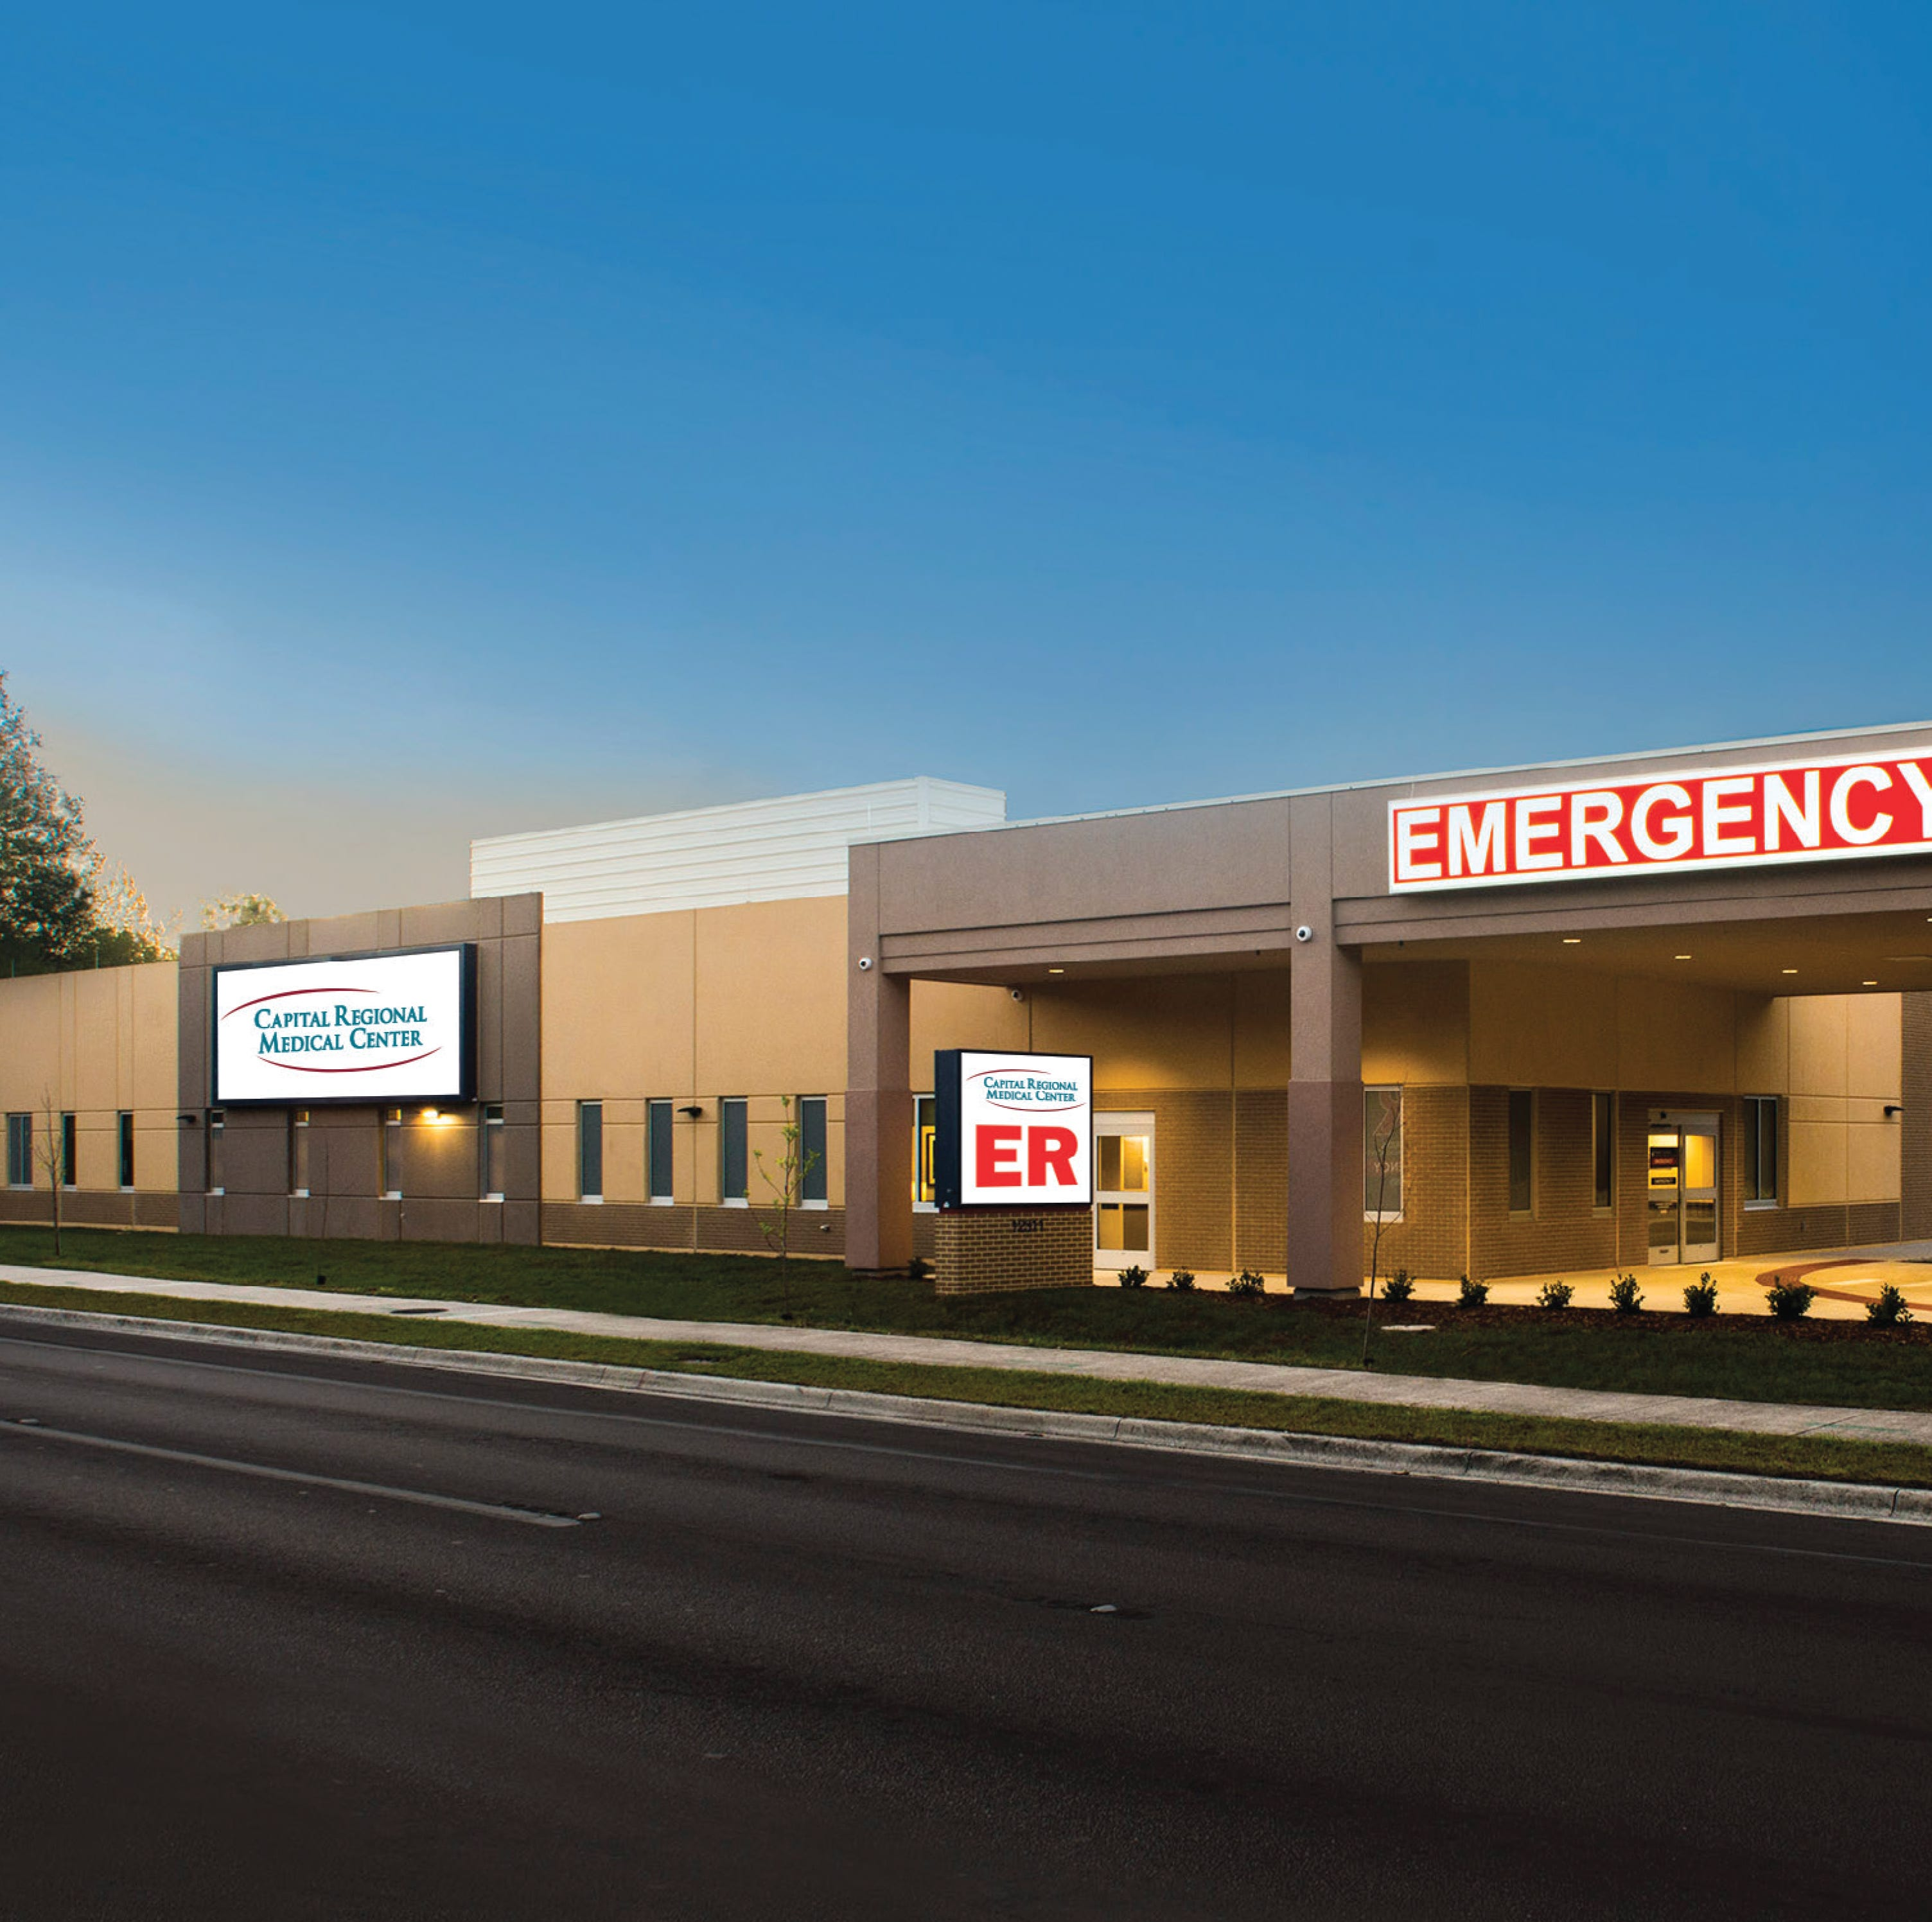 Capital Regional Medical Center's new ERs adding jobs to Tallahassee health care sector